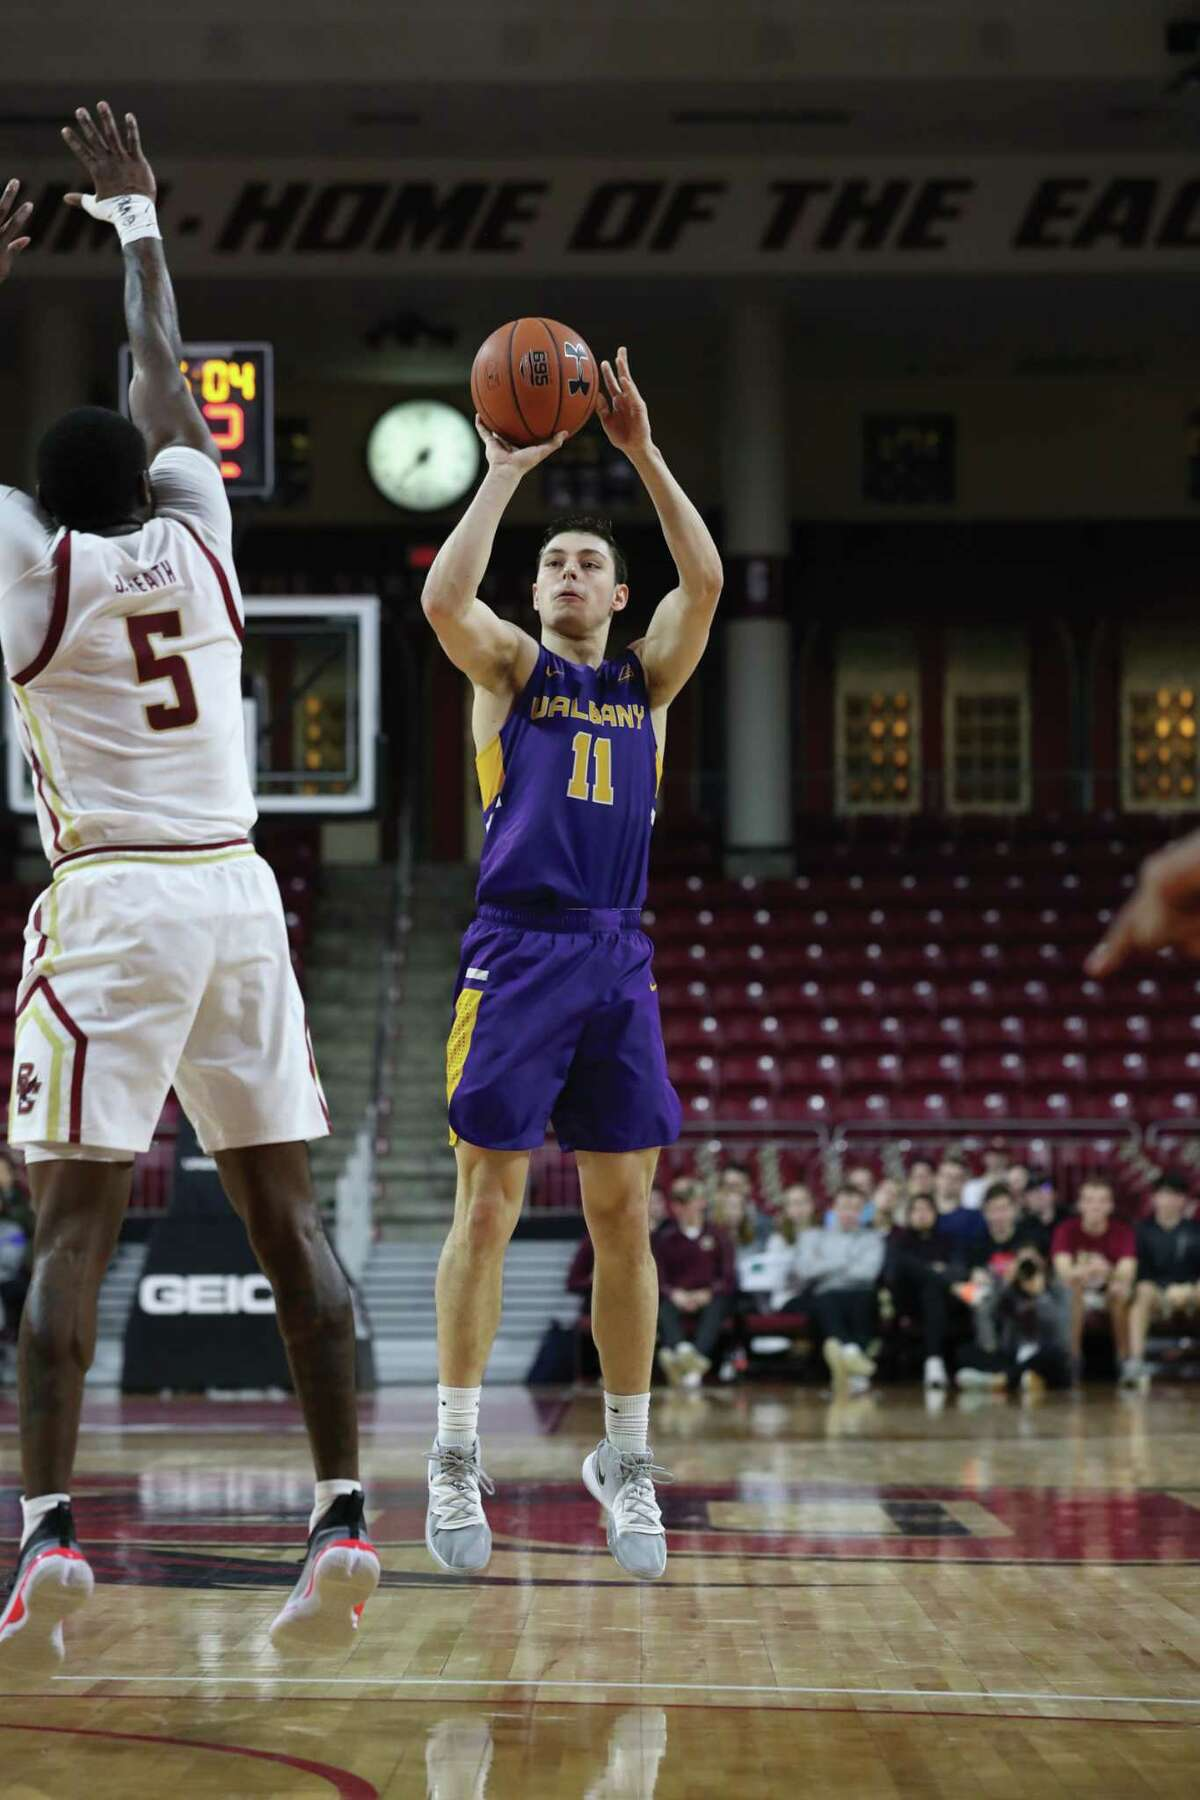 UAlbany's Cameron Healy (11) puts up a shot against Boston College's Jay Heath on Tuesday in Chestnut Hill, Mass.